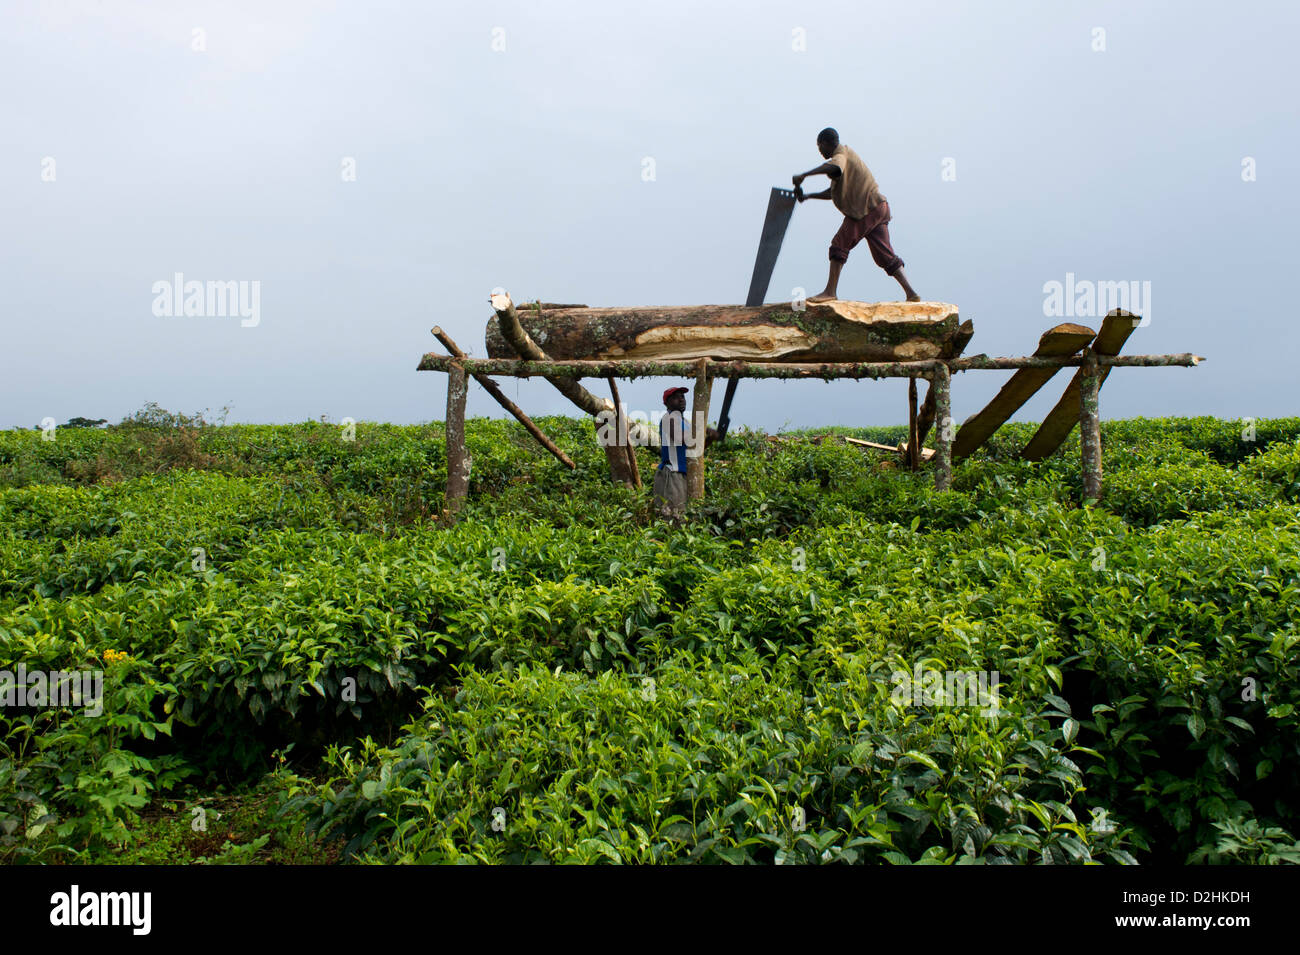 Sawing wood in the tea plantation on the edge of Nyungwe Forest National Park, Rwanda - Stock Image